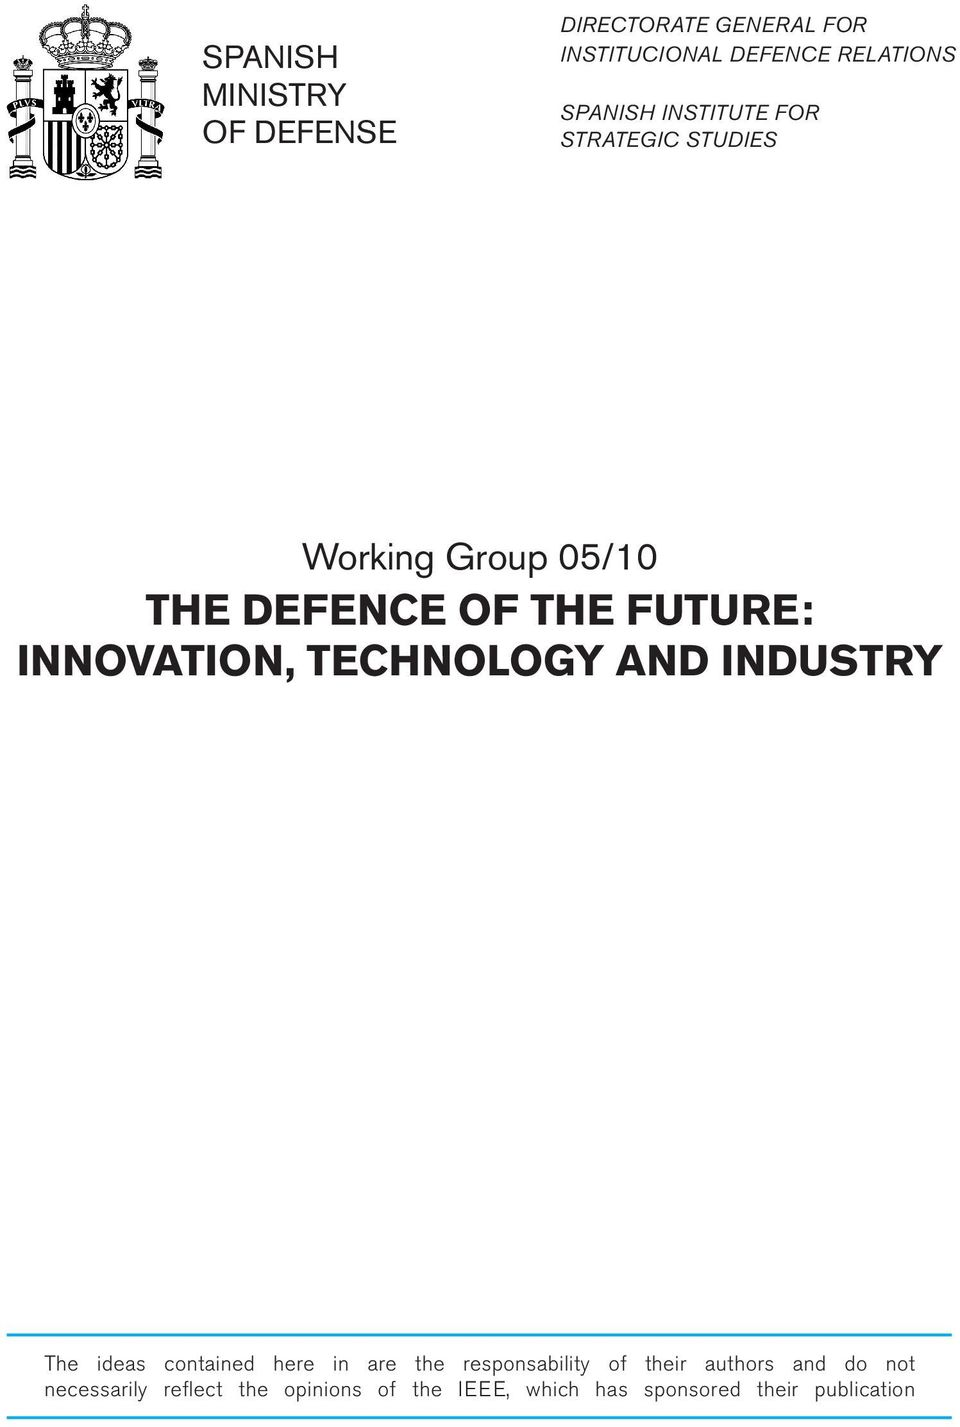 TECHNOLOGY AND INDUSTRY The ideas contained here in are the responsability of their authors